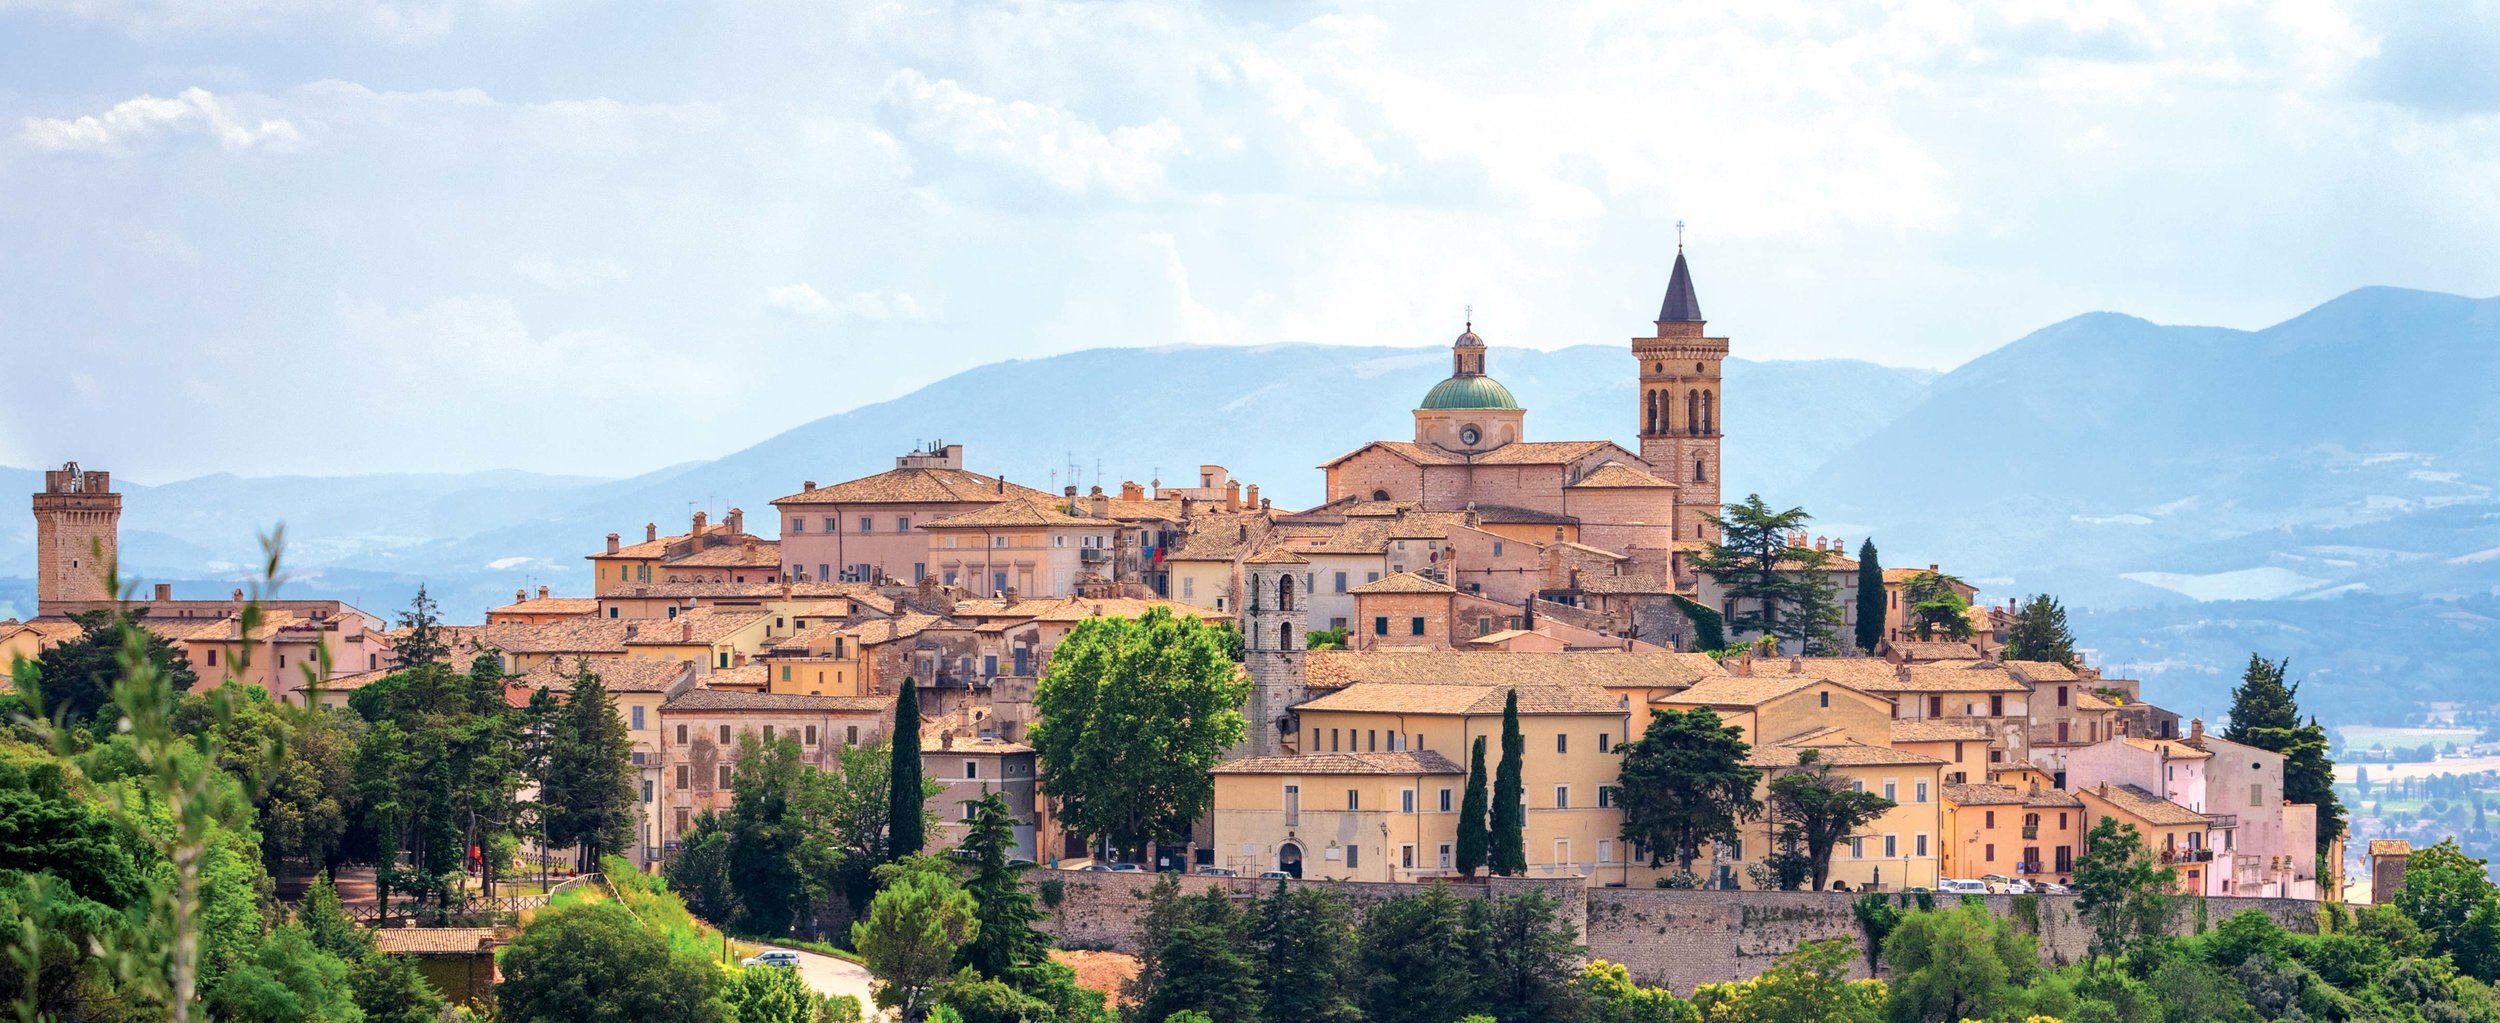 Stylish Umbria - Immerse yourself in the great heart of Italy.From £995